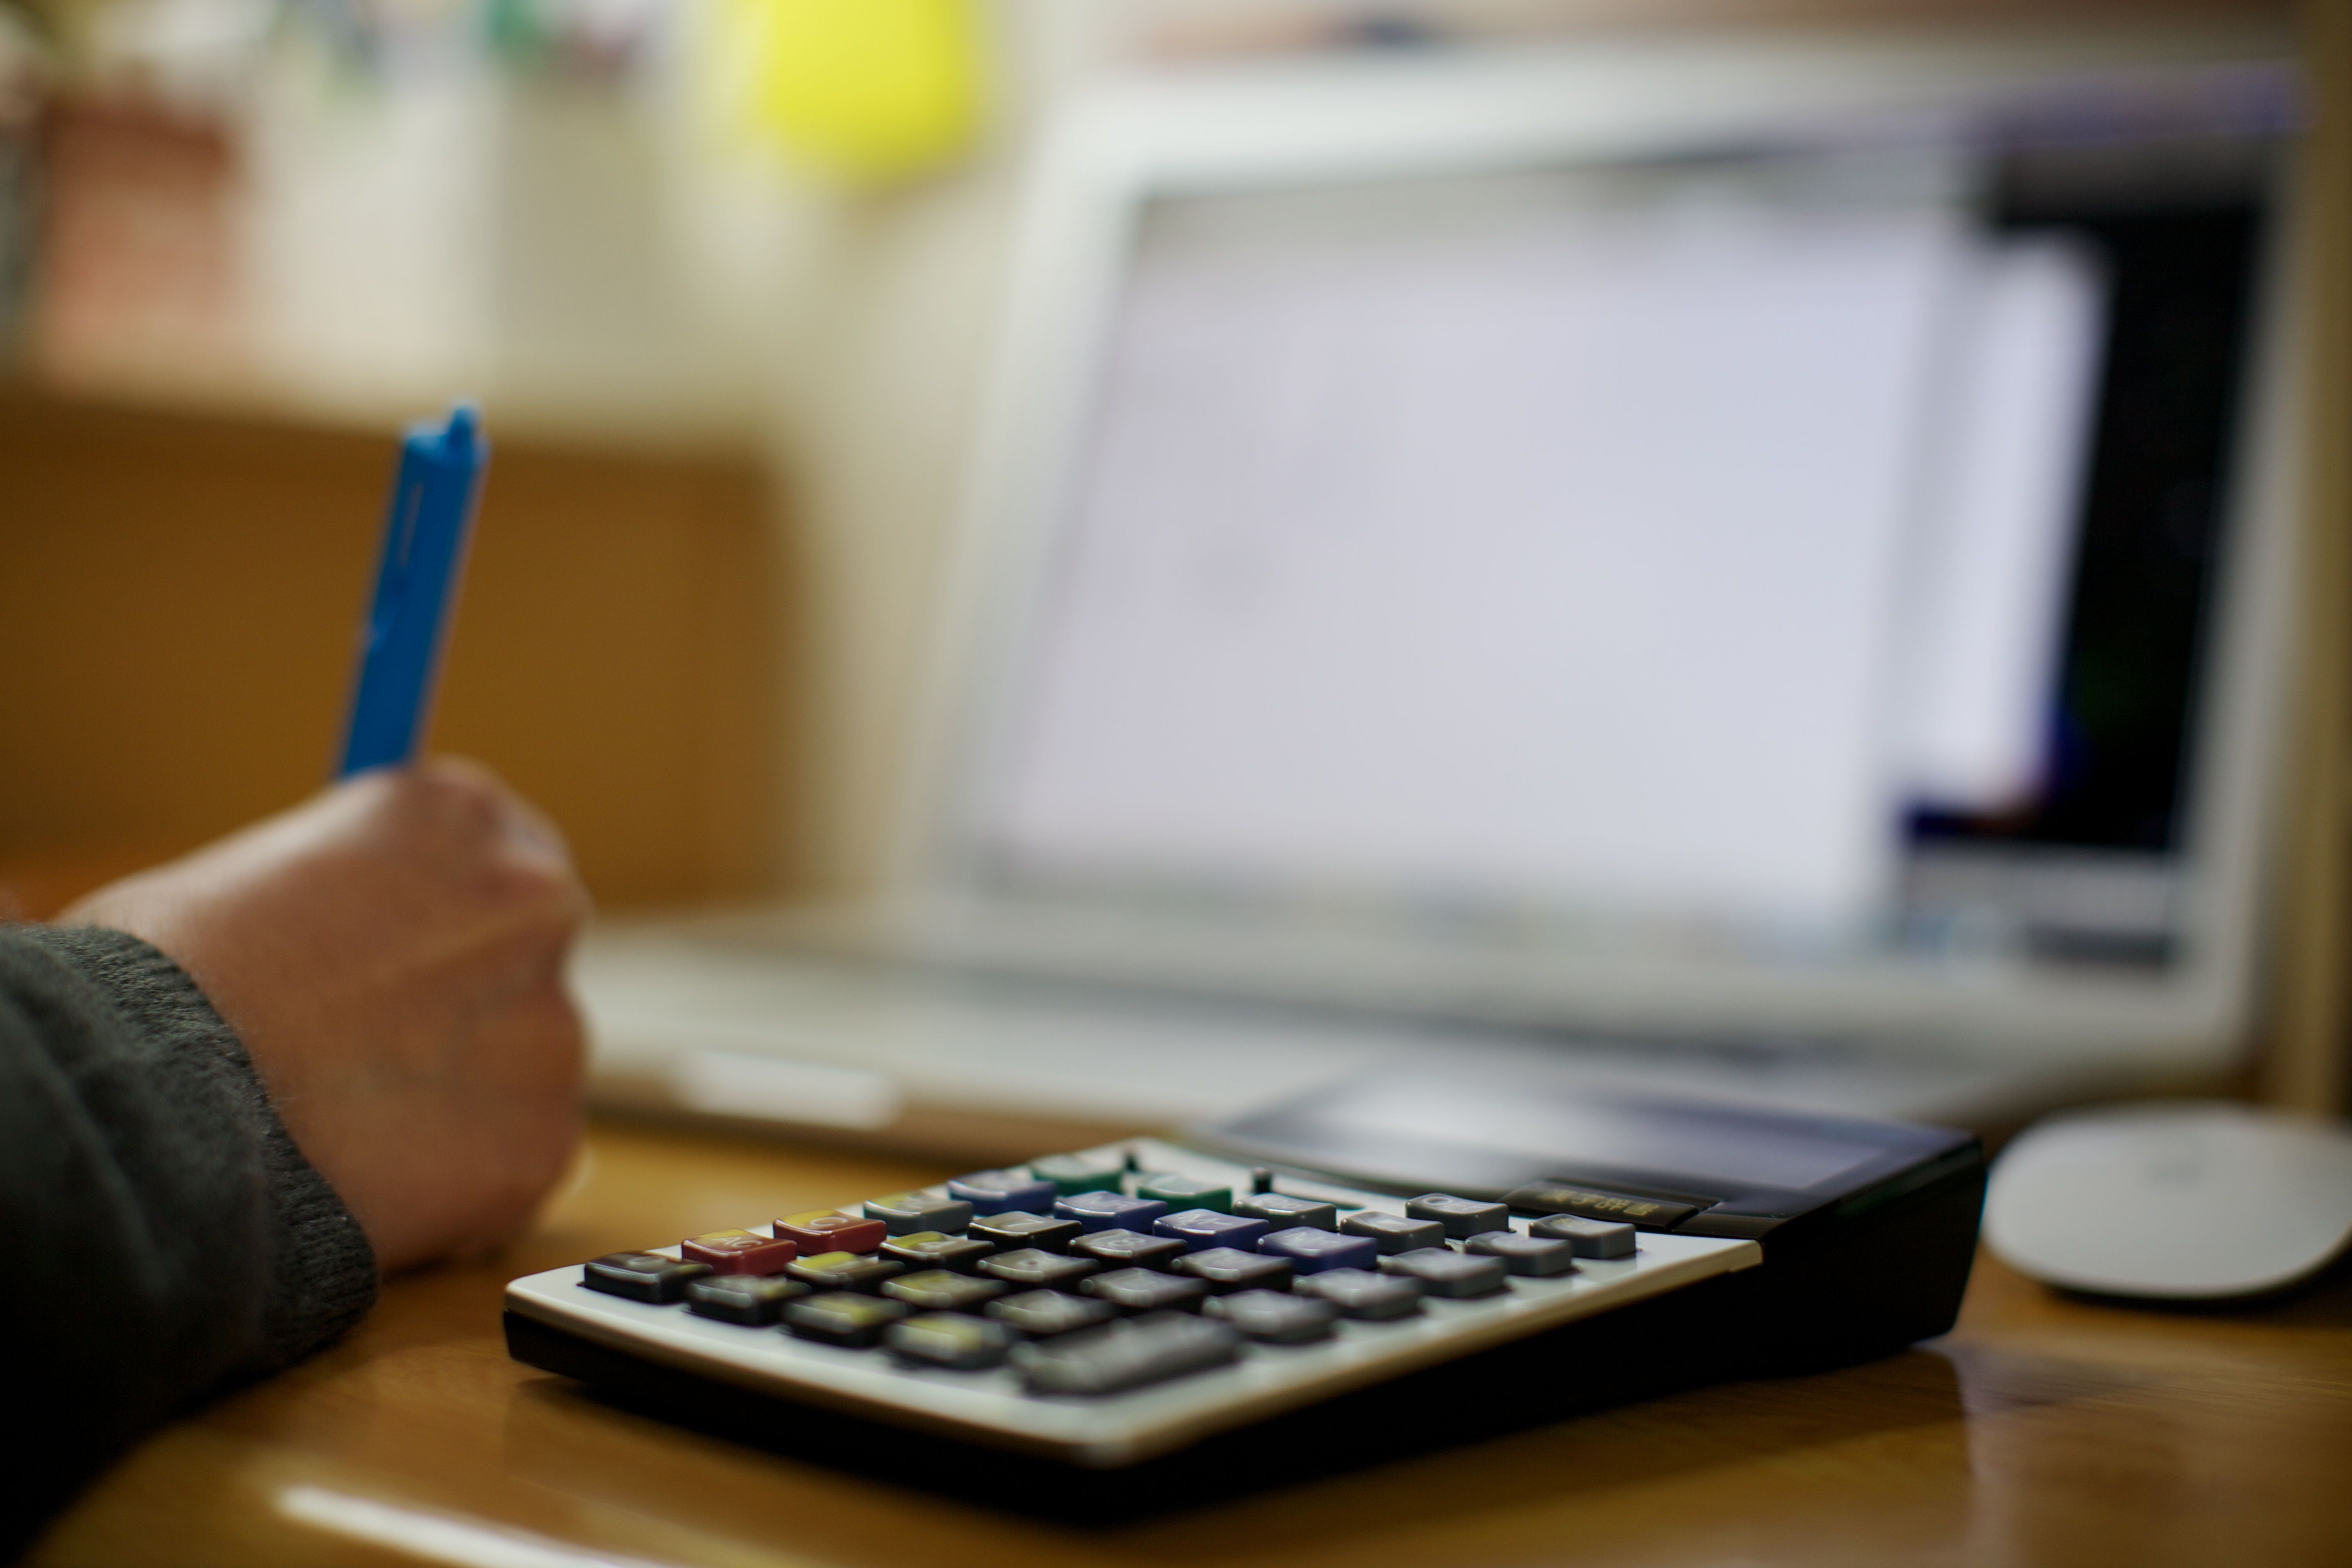 Accountant working at desk, calculator in focus